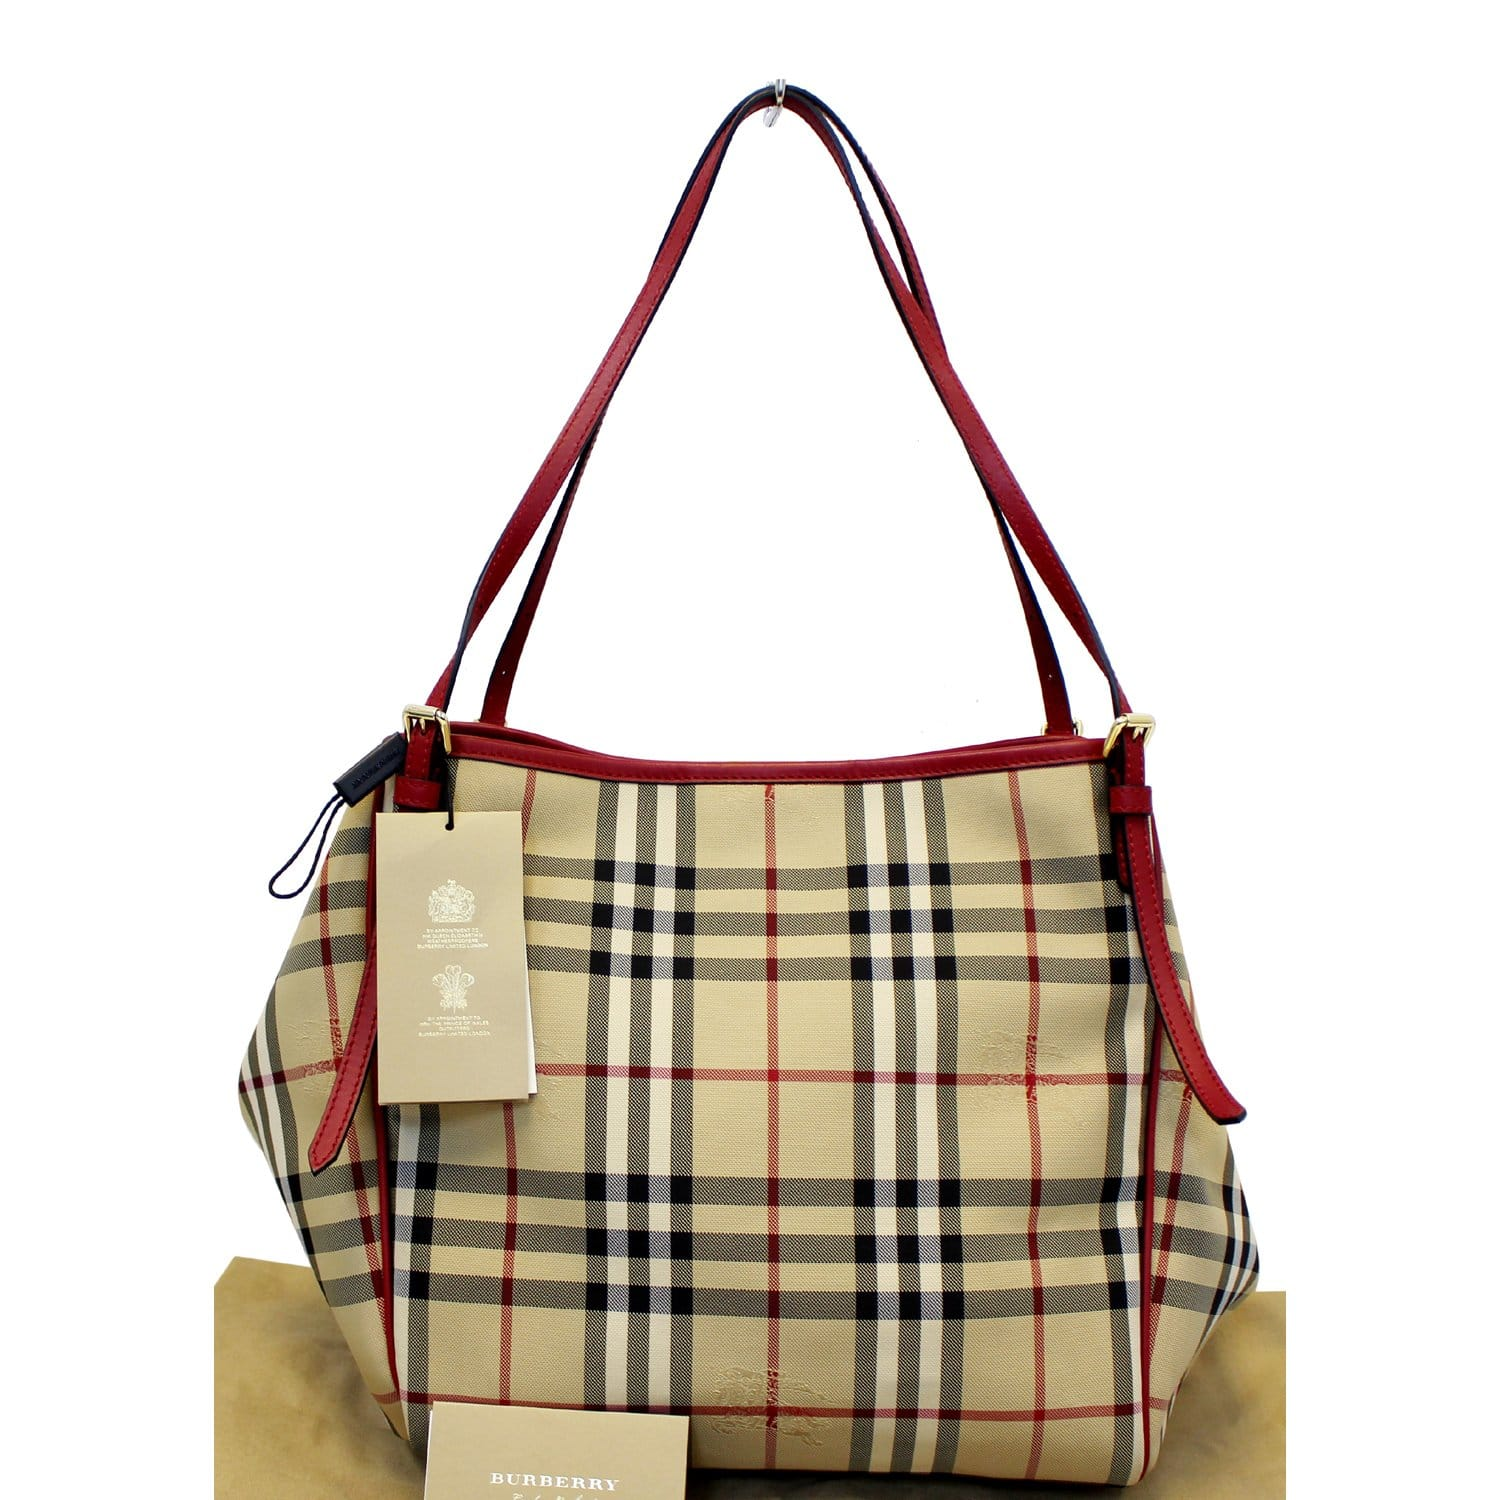 exquisite craftsmanship great variety styles unequal in performance BURBERRY Haymarket Check PVC Tote Shoulder Bag